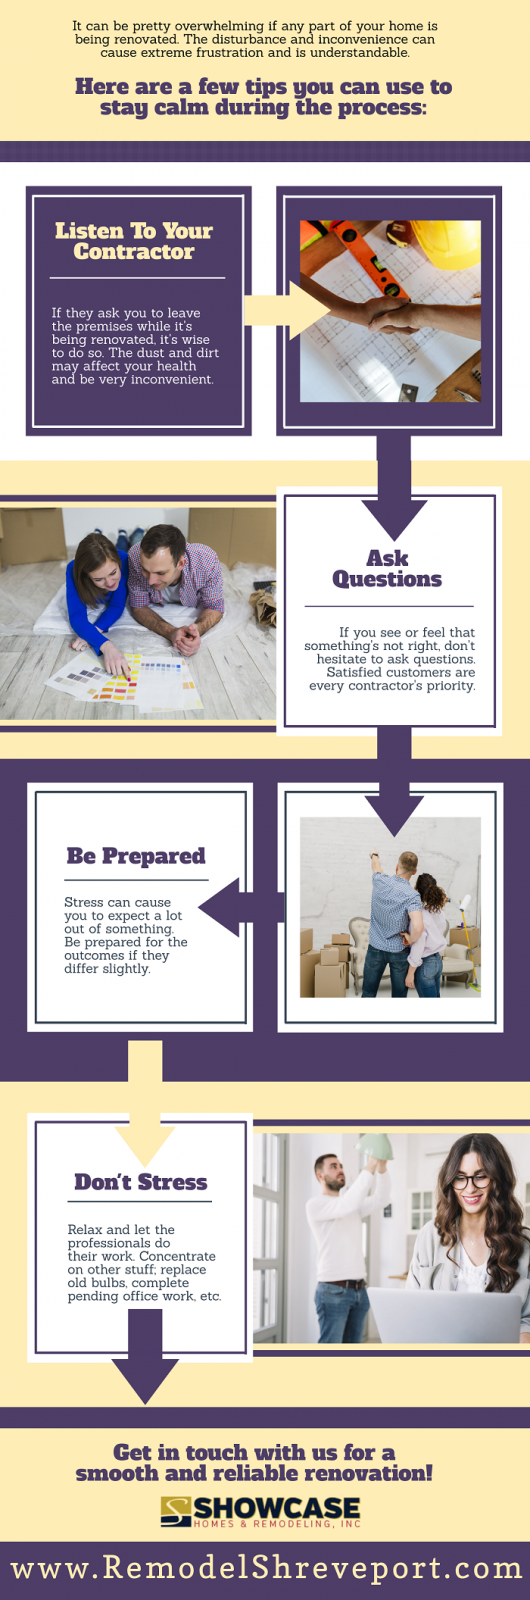 Tips for Coping Up During a Renovation